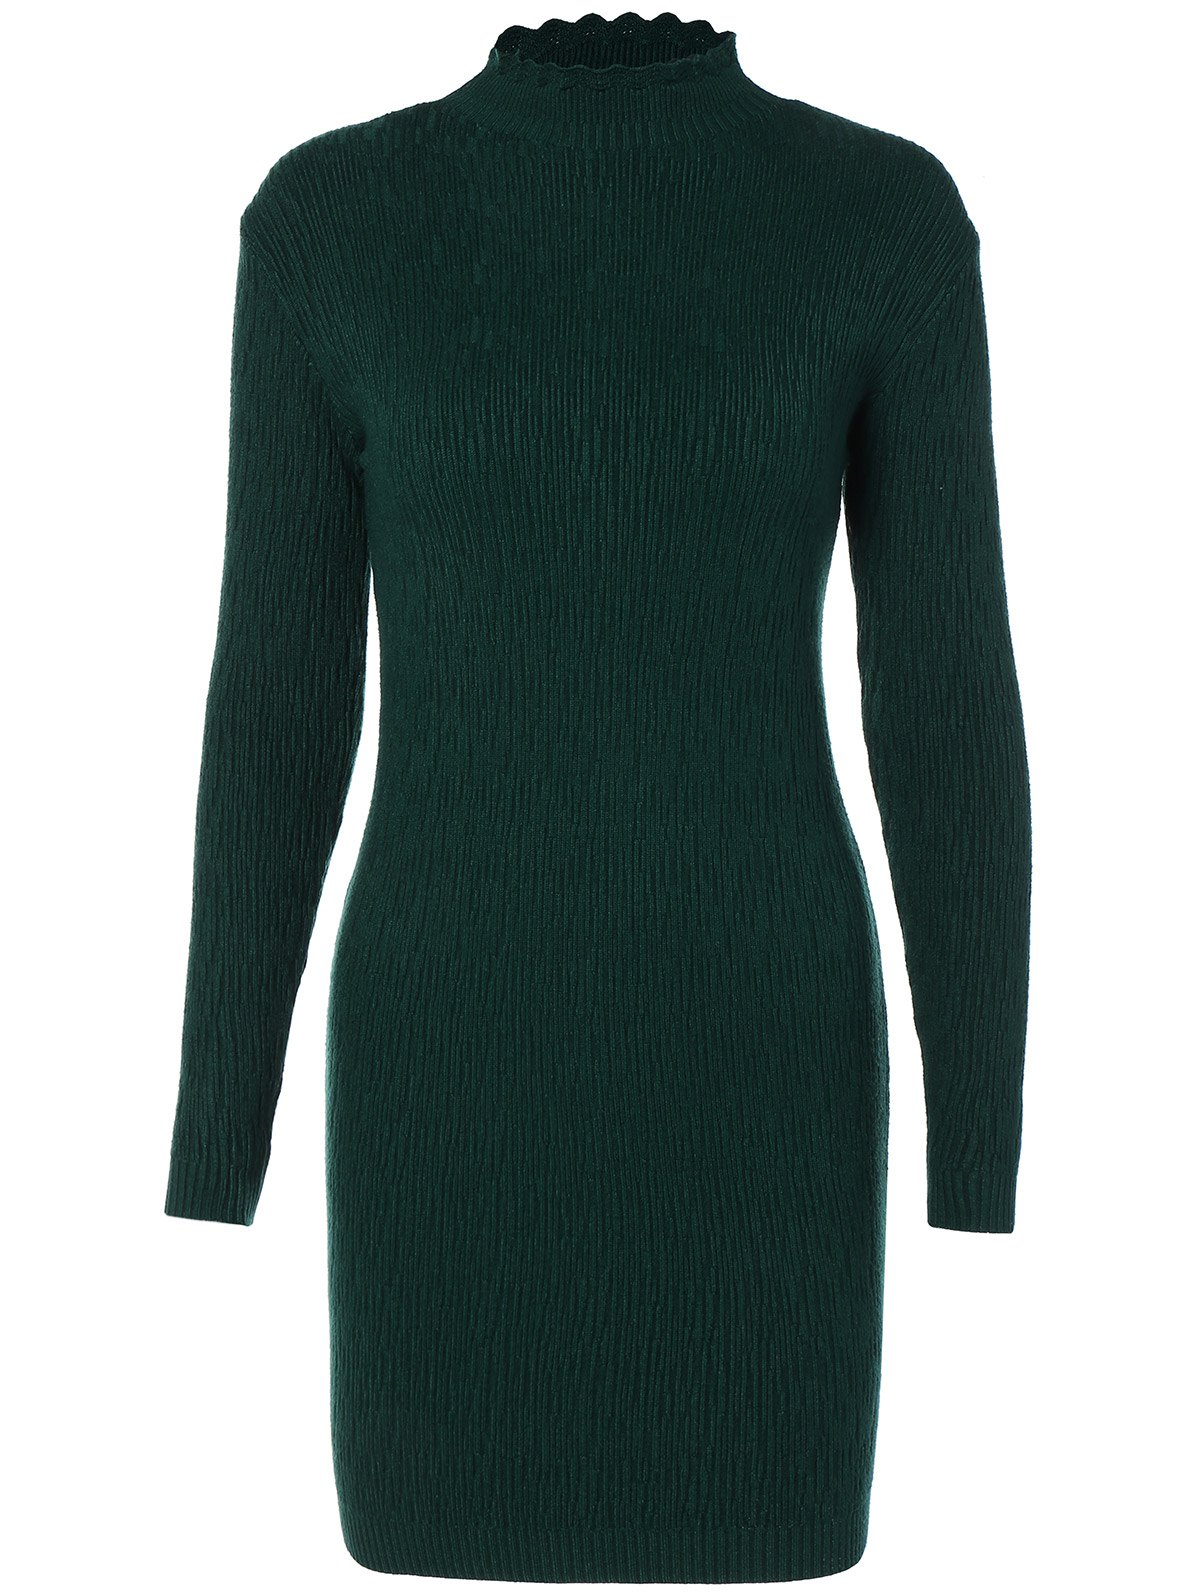 5489f28b48 Ruffle Long Sleeve Fitted Sweater Dress - One Size